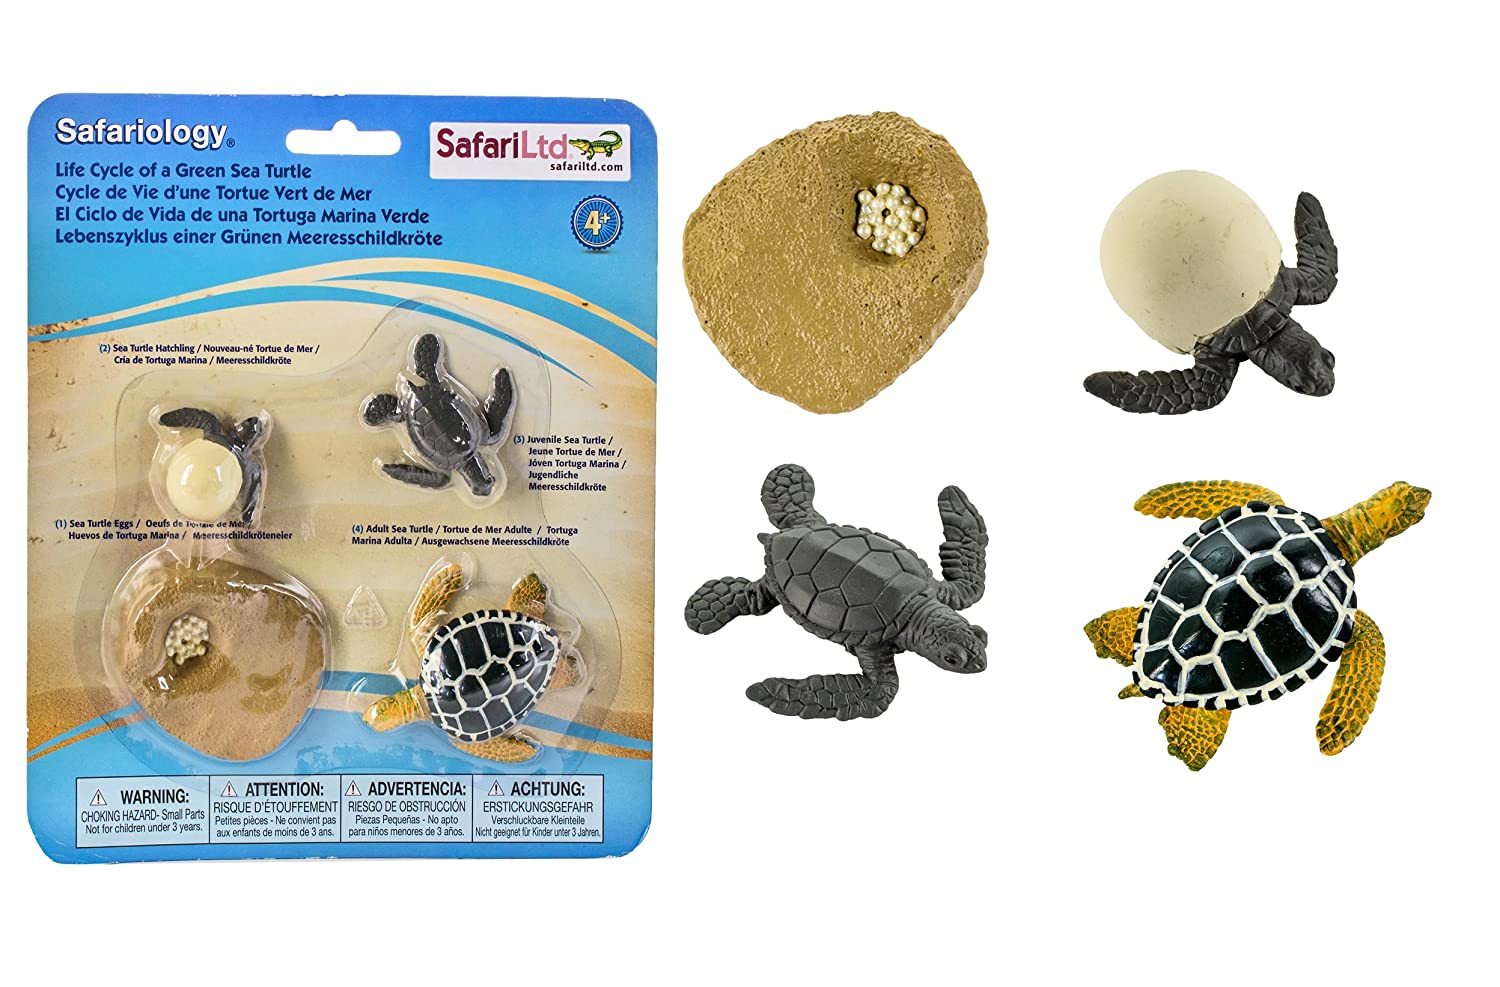 sea turtle life cycle diagram partsam led lights wiring plant and animal lifecycles free printables crafts